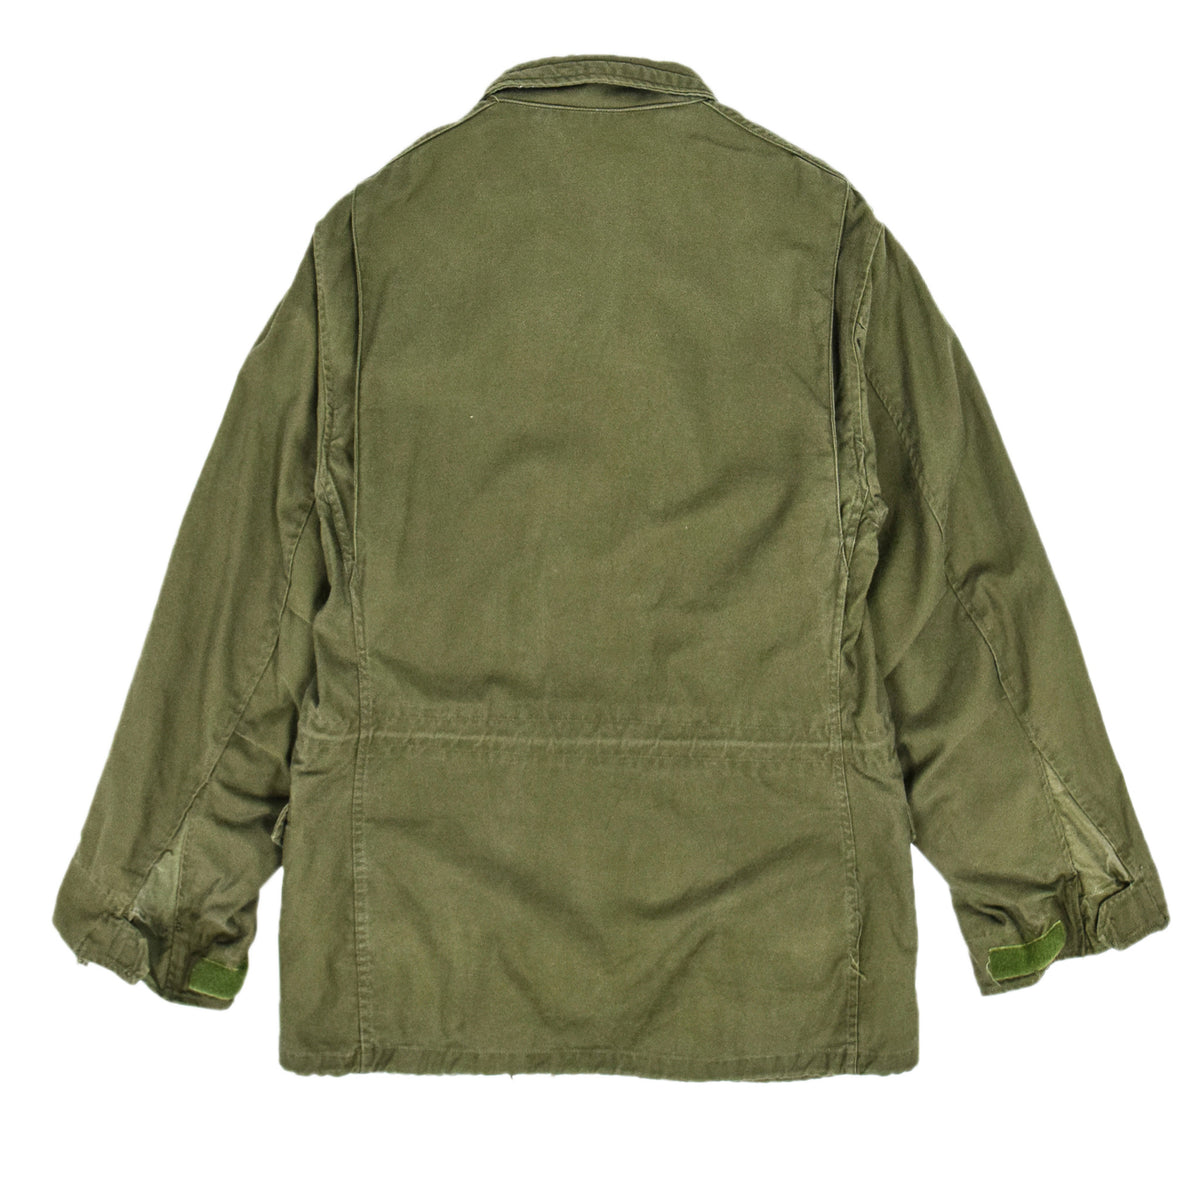 Vintage 60s Vietnam M-65 Man's Field Sateen 0G-107 Green US Army Coat M Short back